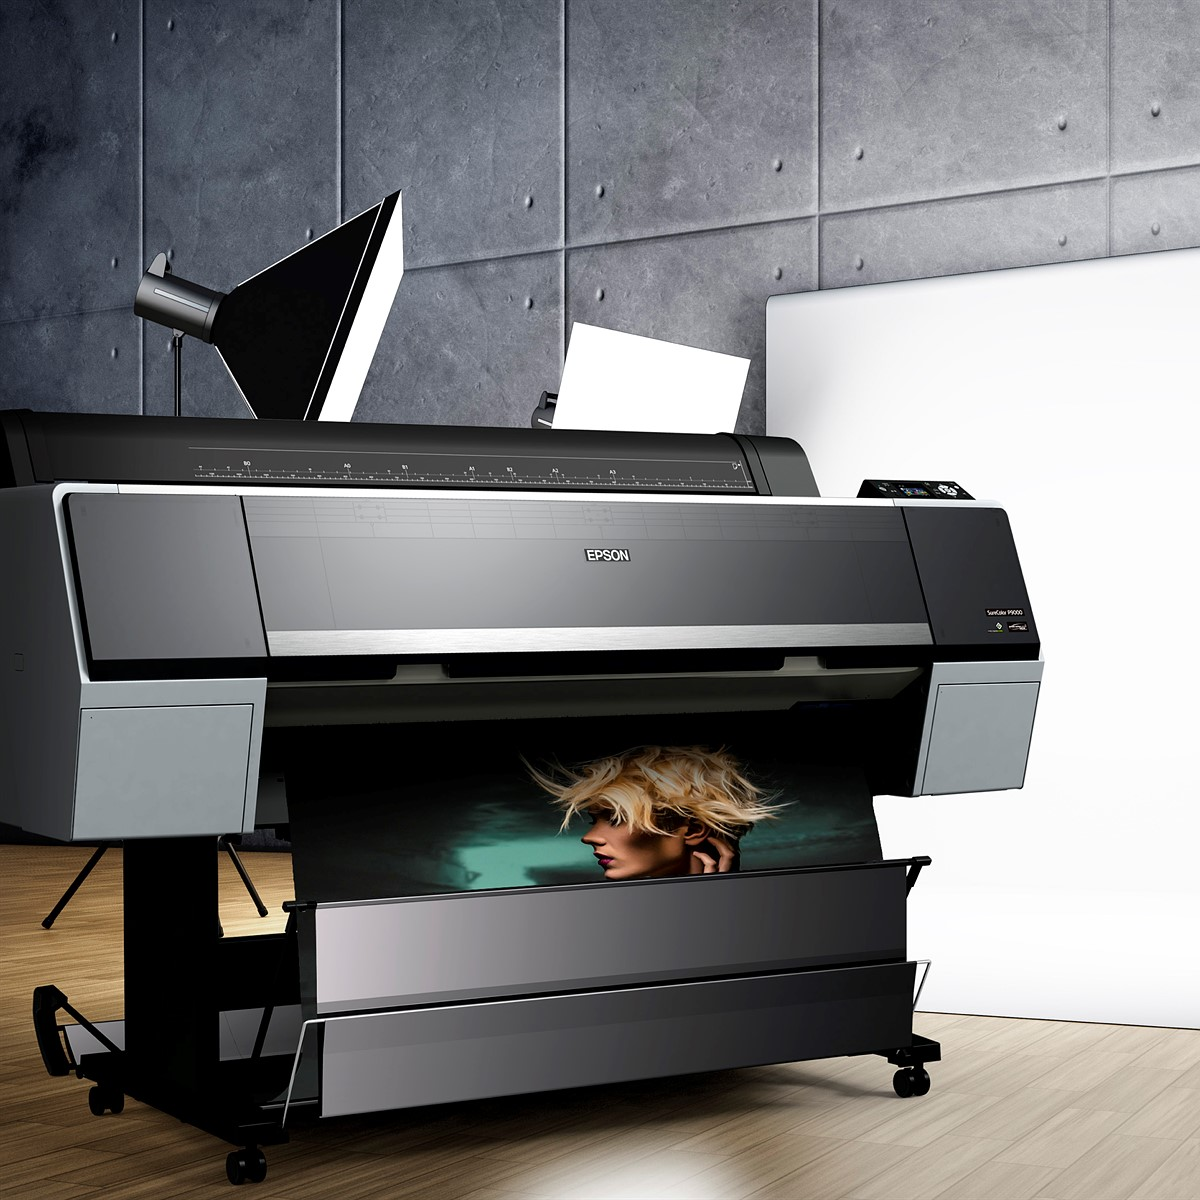 Epson introduces quartet of SureColor large format printers